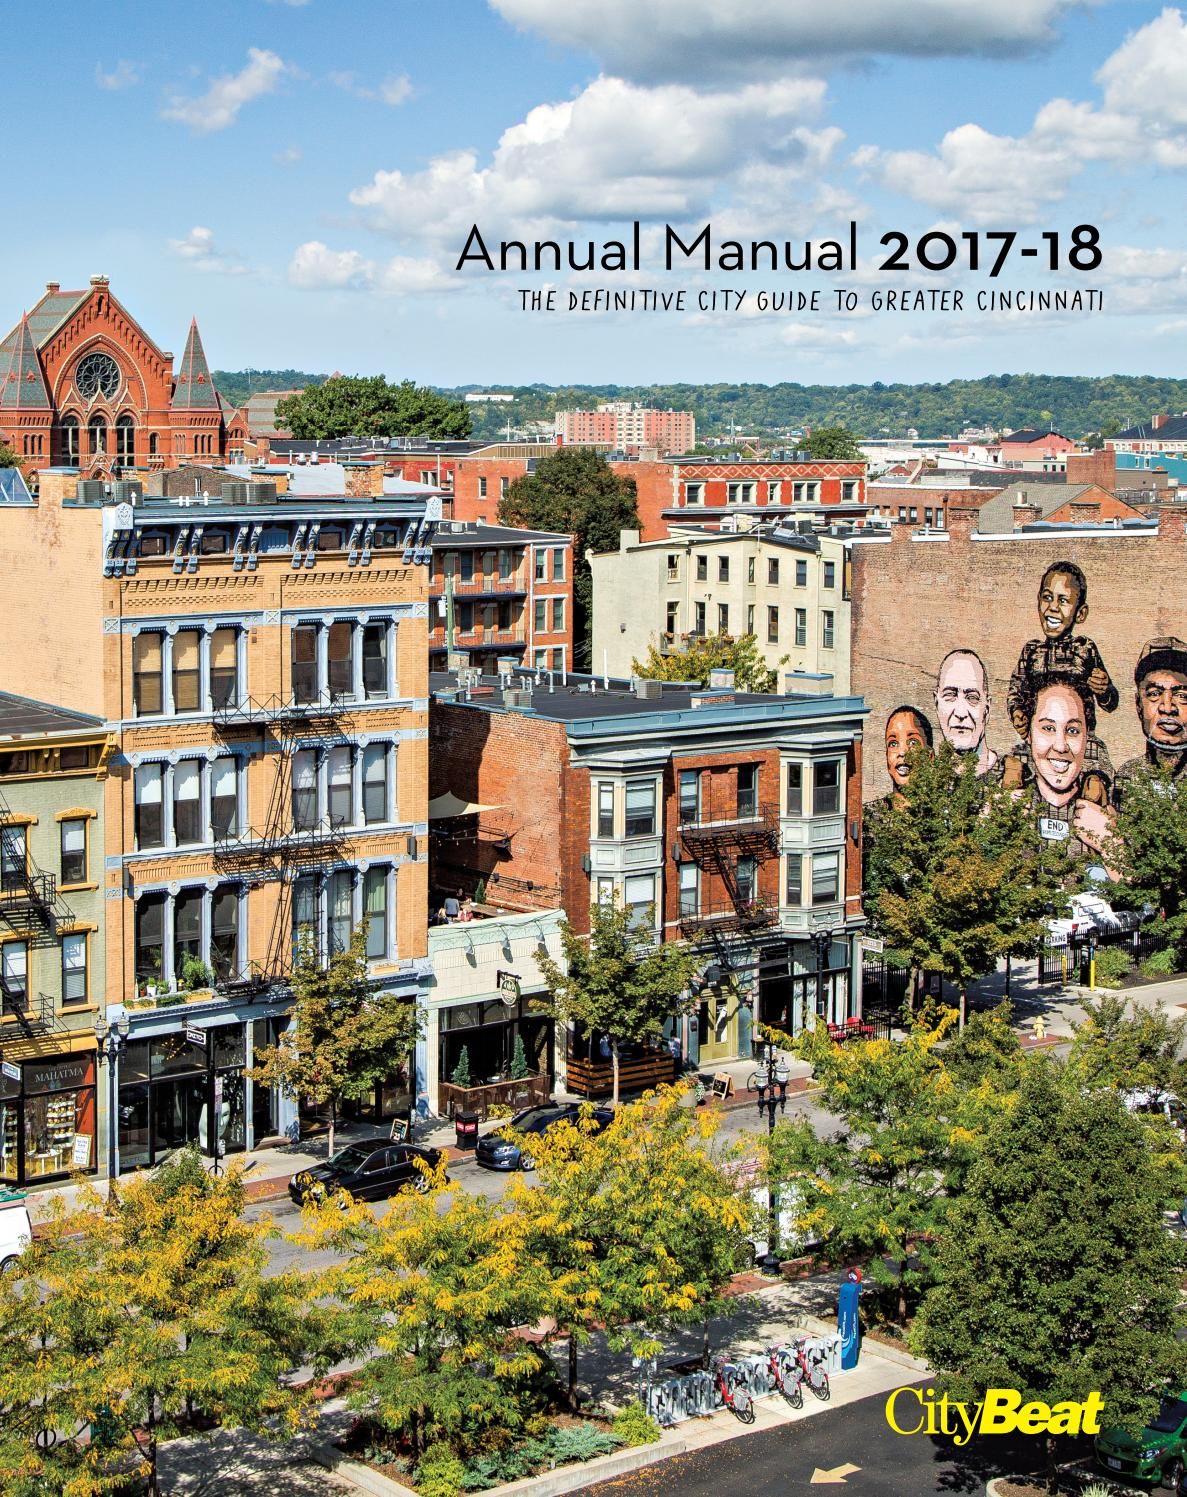 Annual Manual 2017-18 by Cincinnati CityBeat - issuu